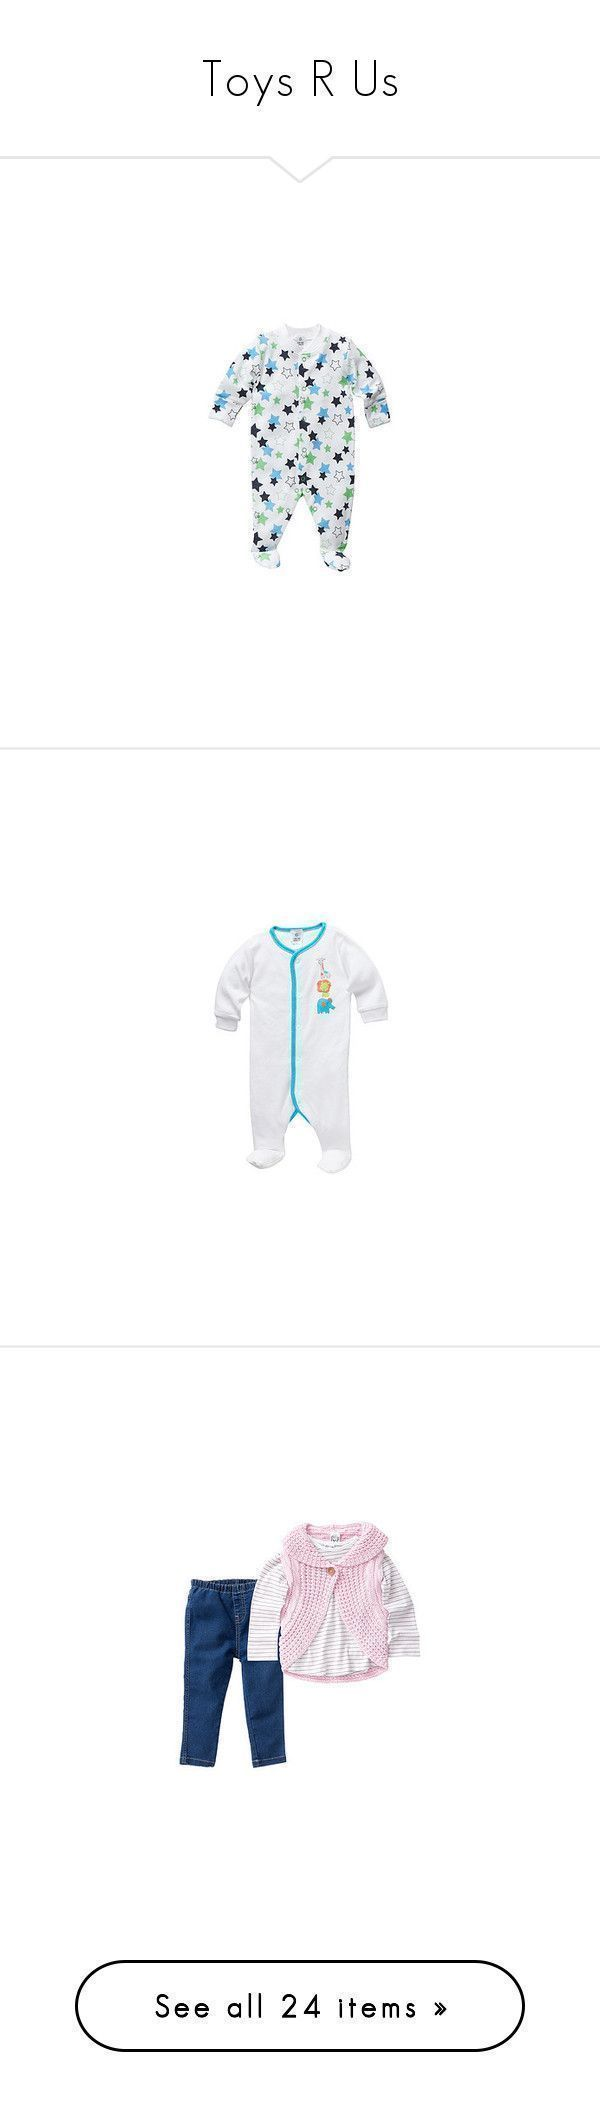 """""""Toys R Us"""" by little-miss-potter ❤ liked on Polyvore featuring baby clothes, boys, baby, baby boy, baby stuff, baby girl, pajamas, home, furniture and storage furniture #babyboypajamas #babypajamas #babygirlpajamas"""